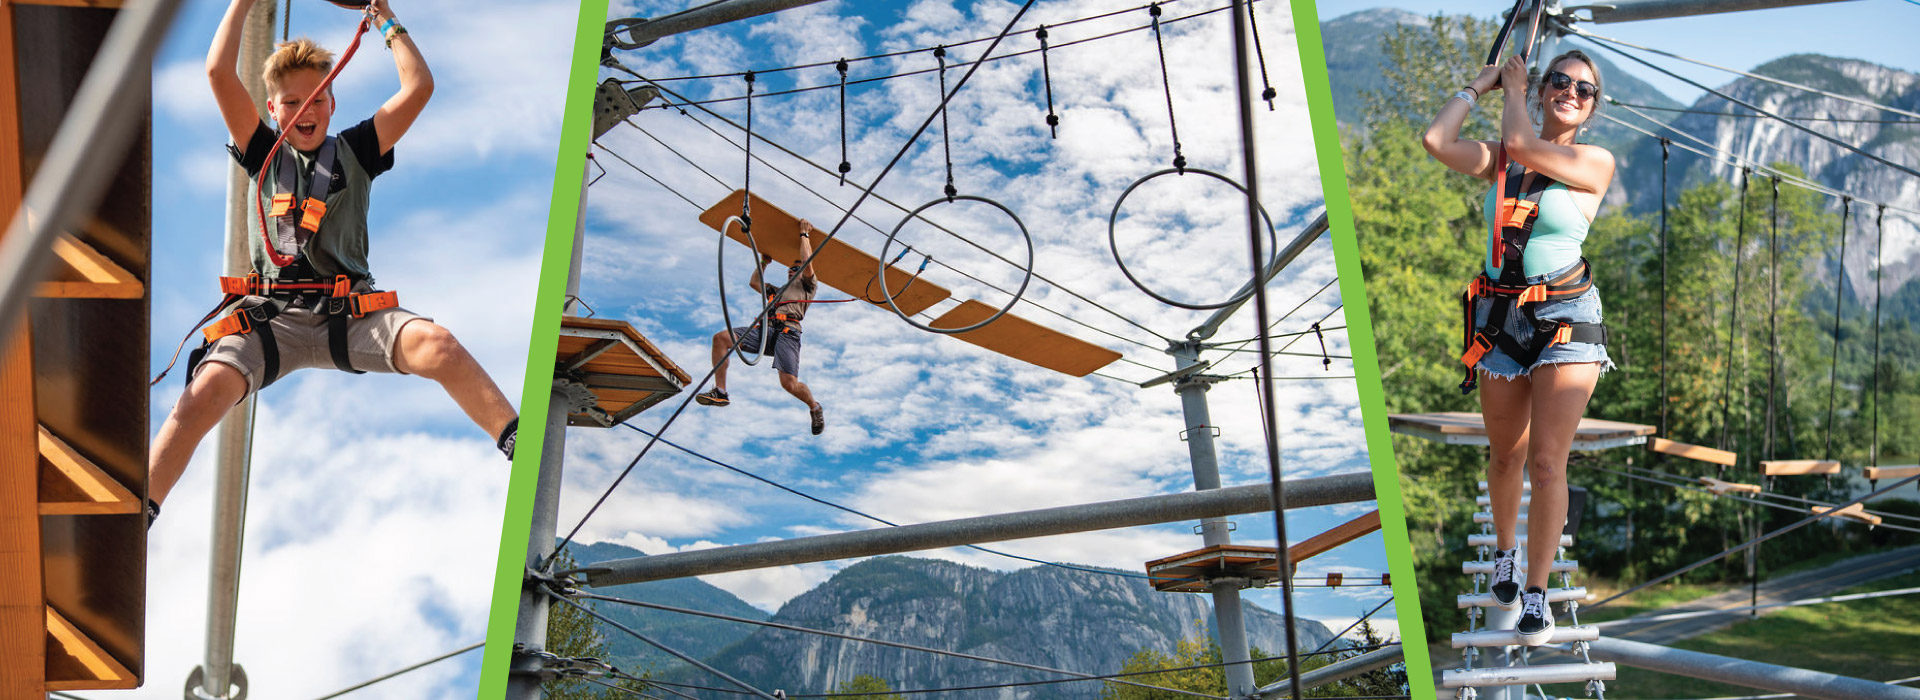 rope runner aerial adventure park squamish banner